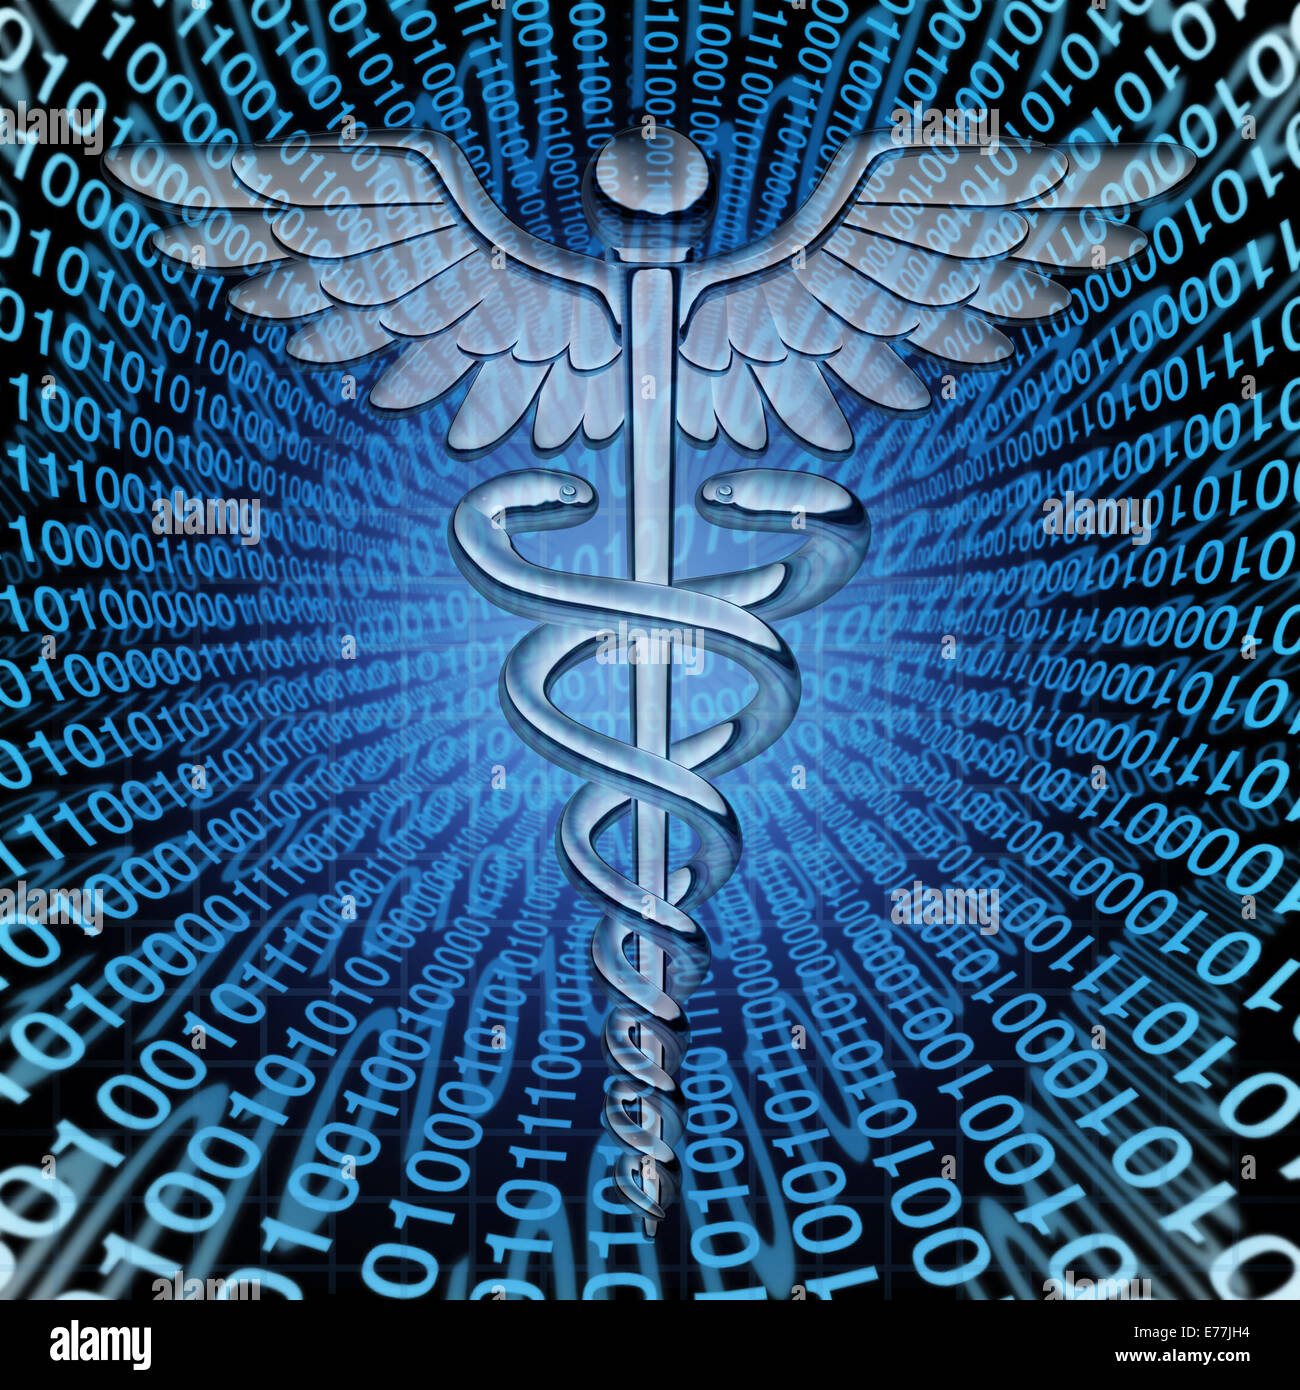 Medical data and the future of health care databases technology concept as a caduceus medicine symbol on a background - Stock Image